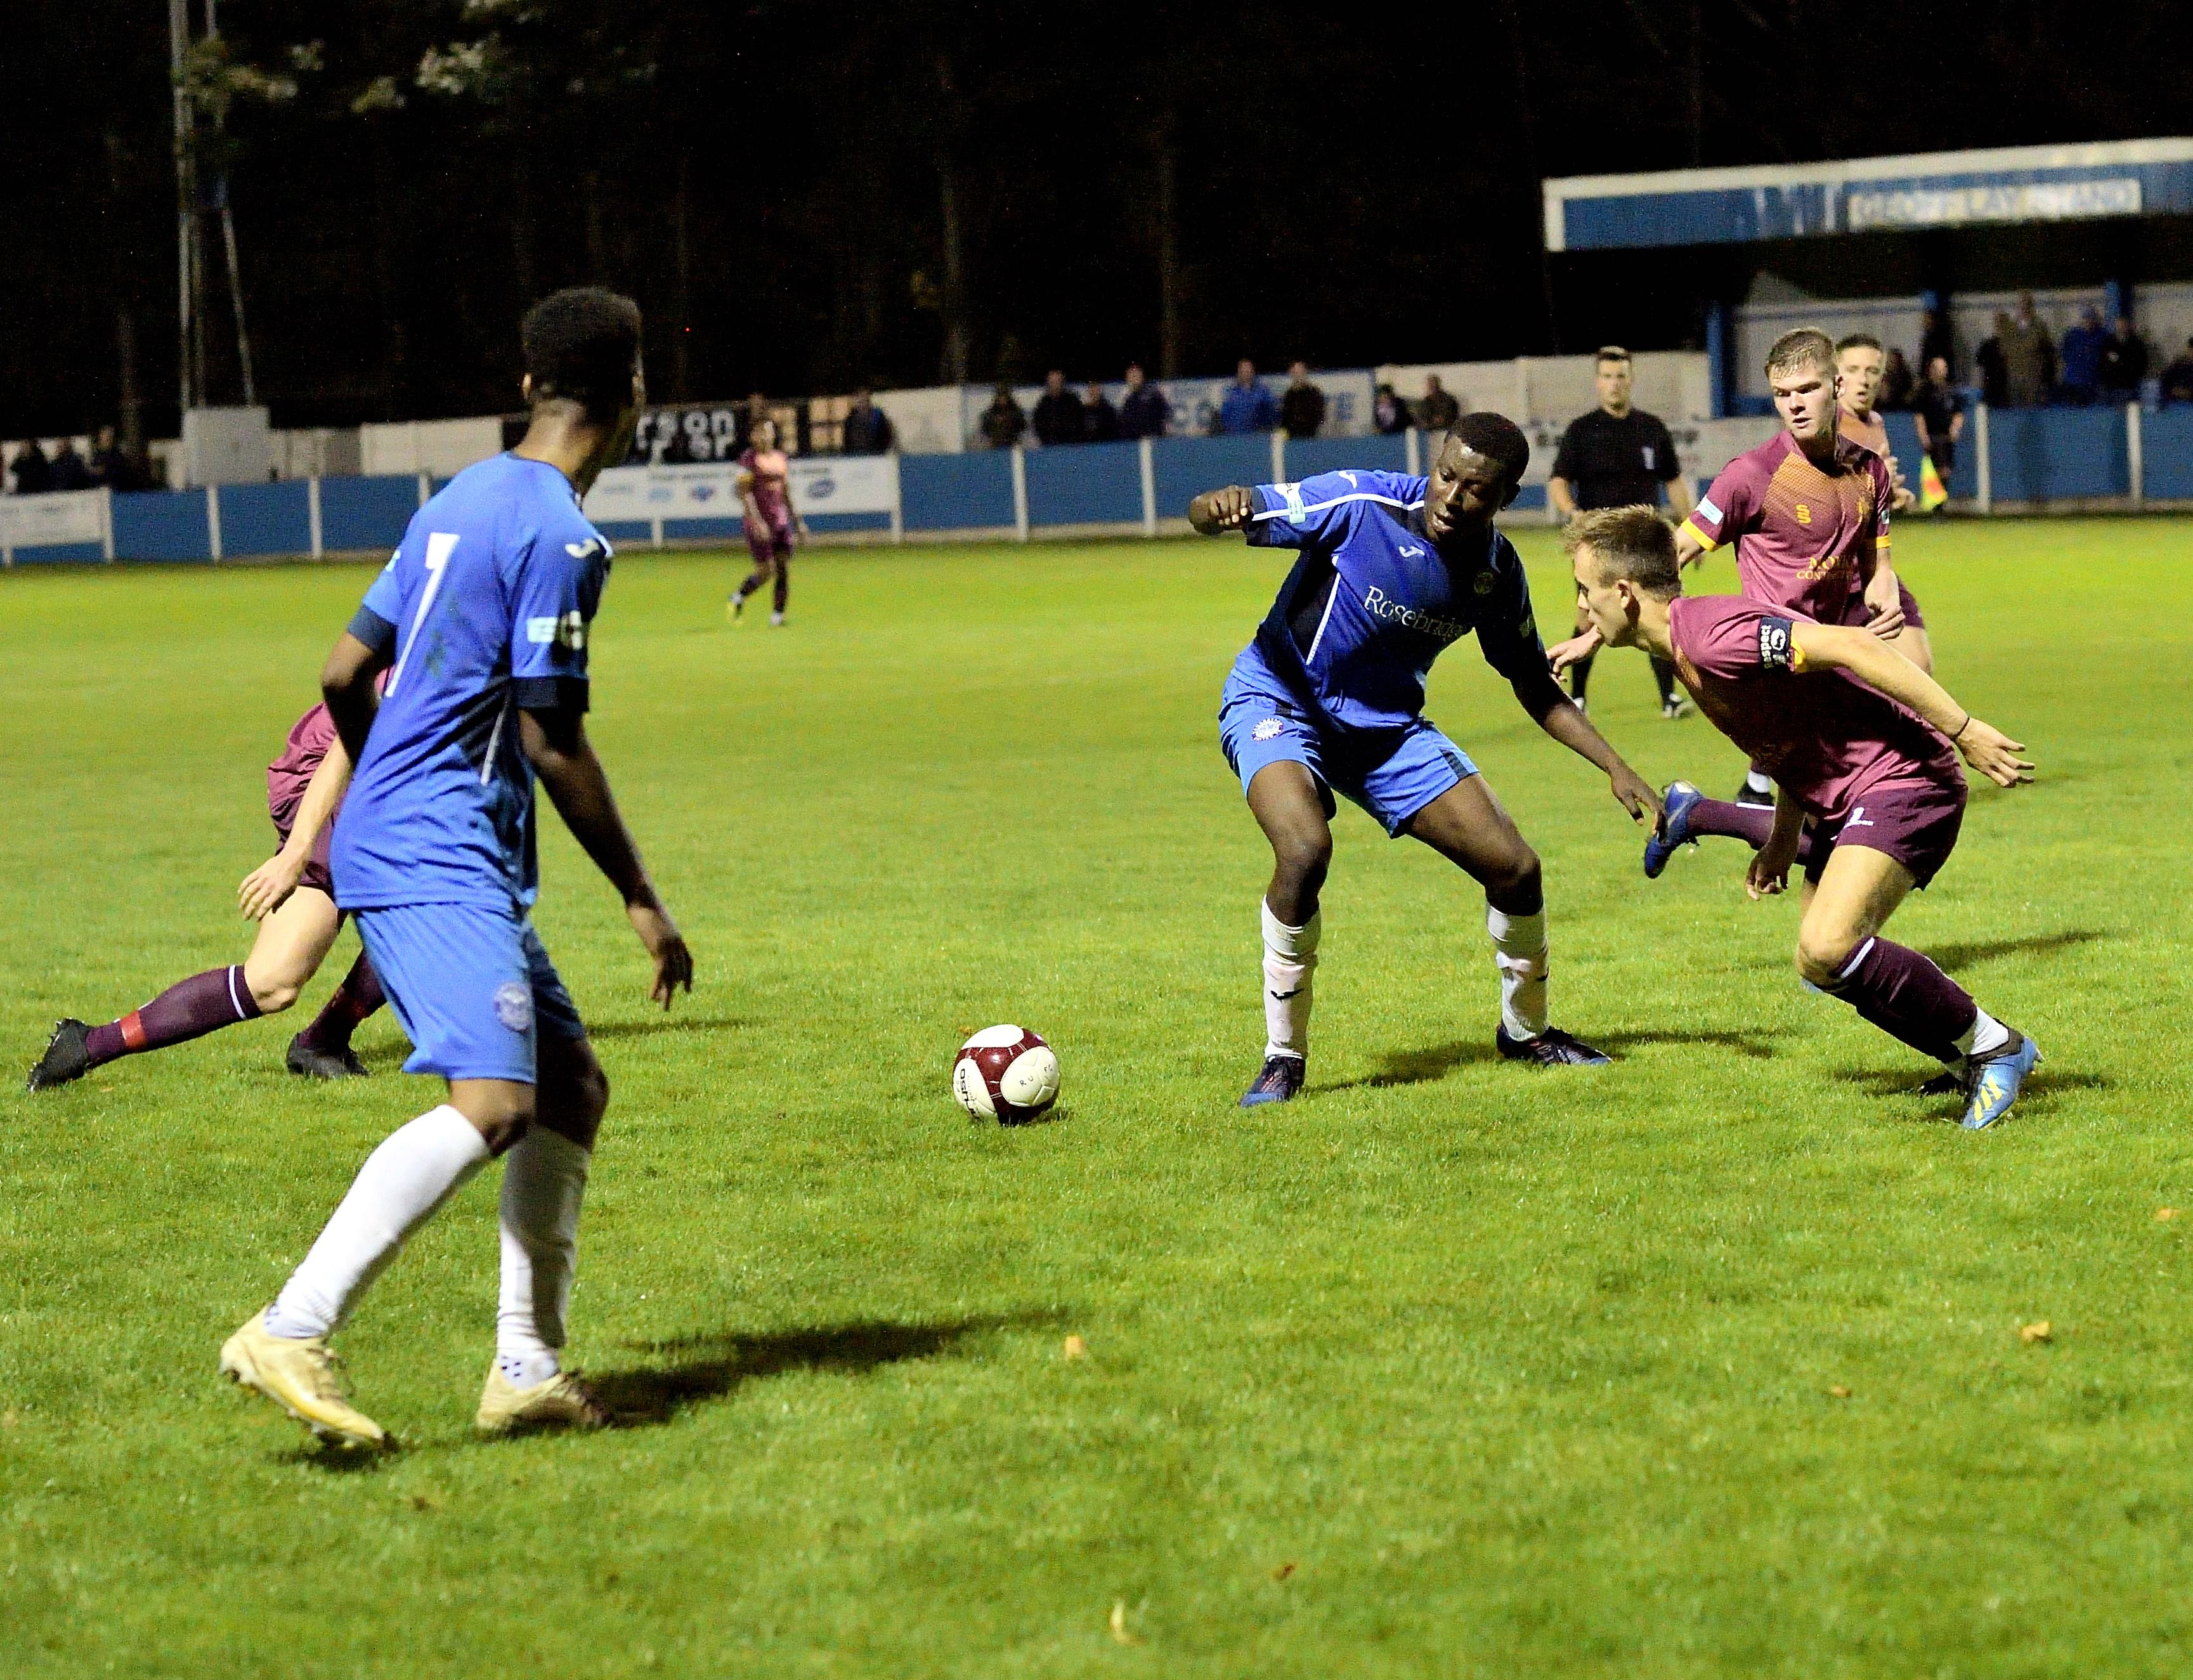 Rams 2 Clitheroe 0 - Match Action